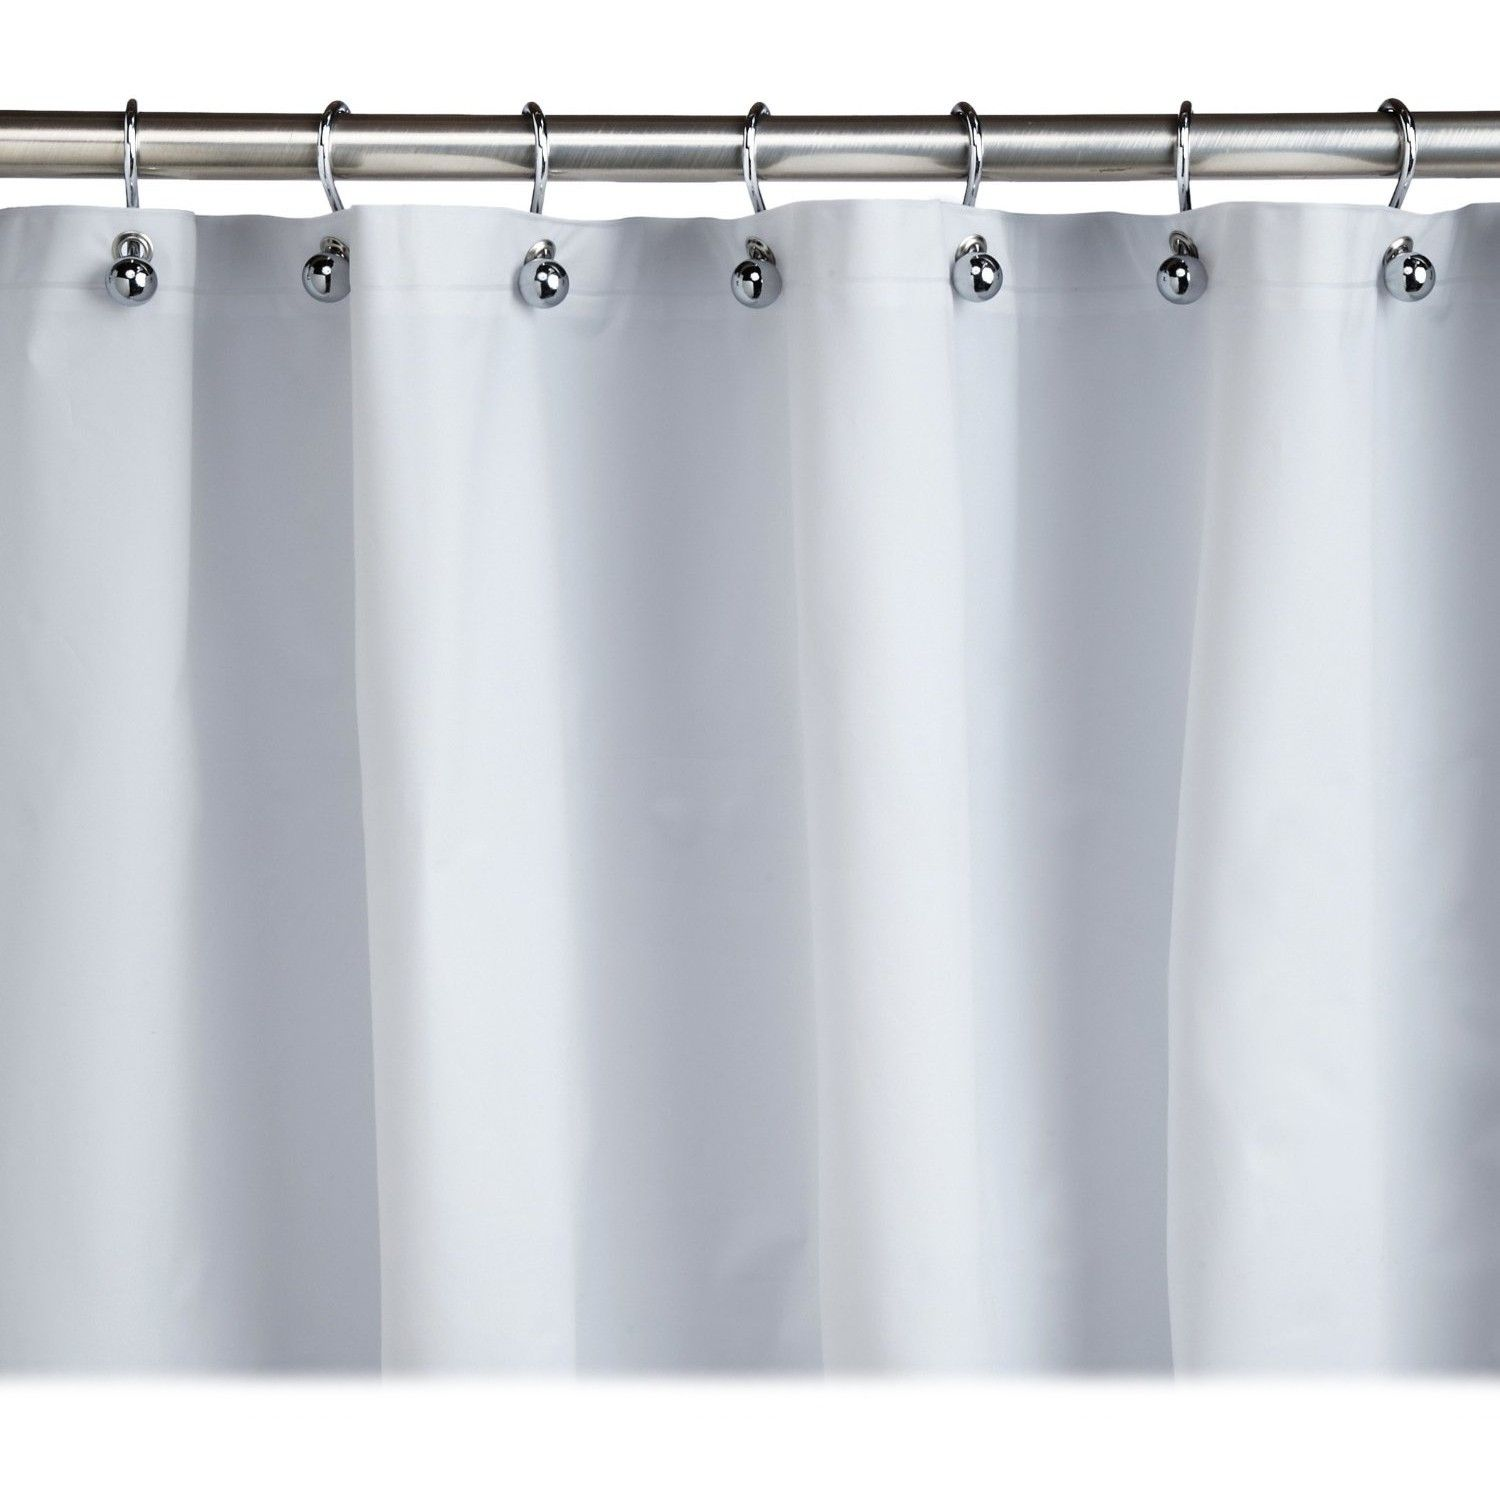 Homz Plastic White Shower Curtain Liner 70 X 72 Inch Curtains